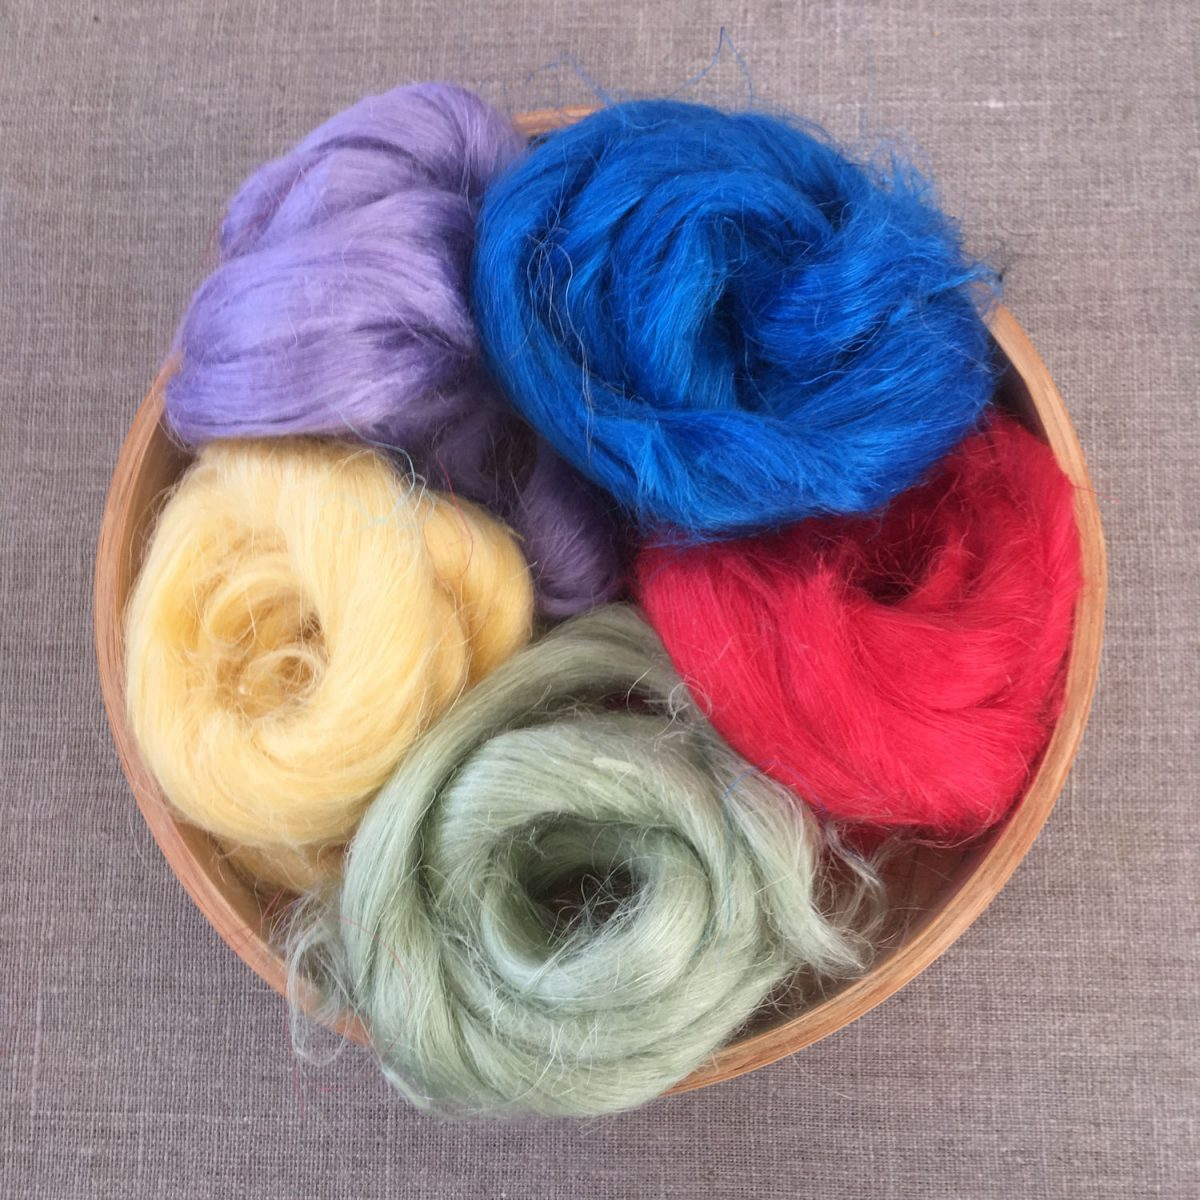 Linen Flax Roving